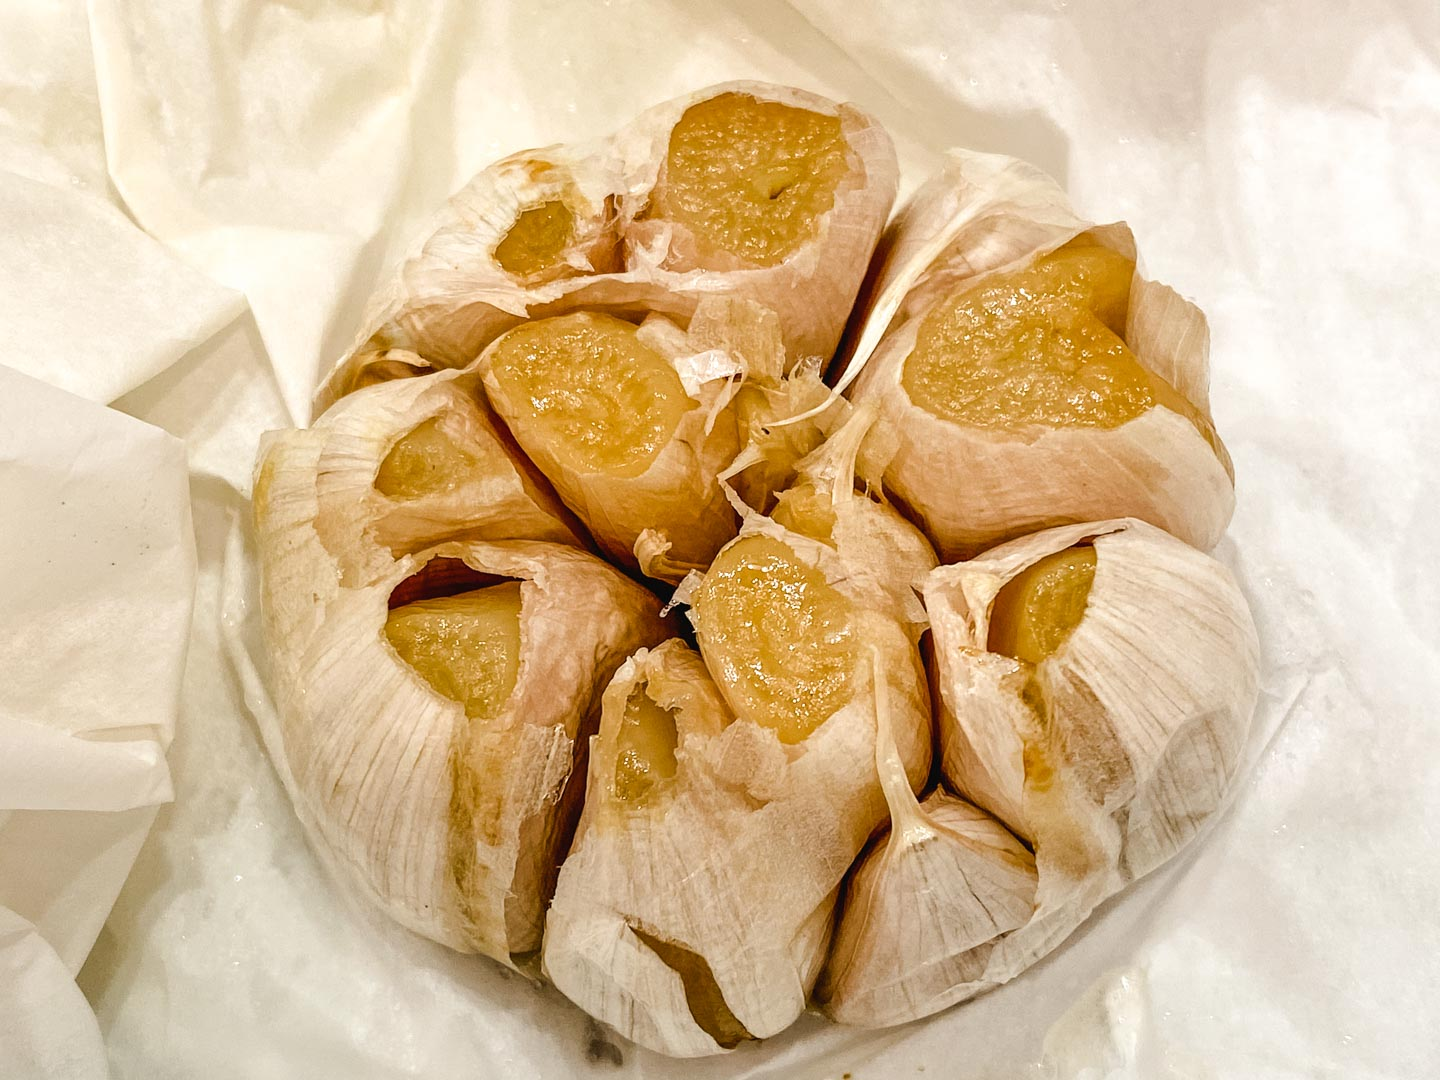 Roasted garlic on parchment paper.